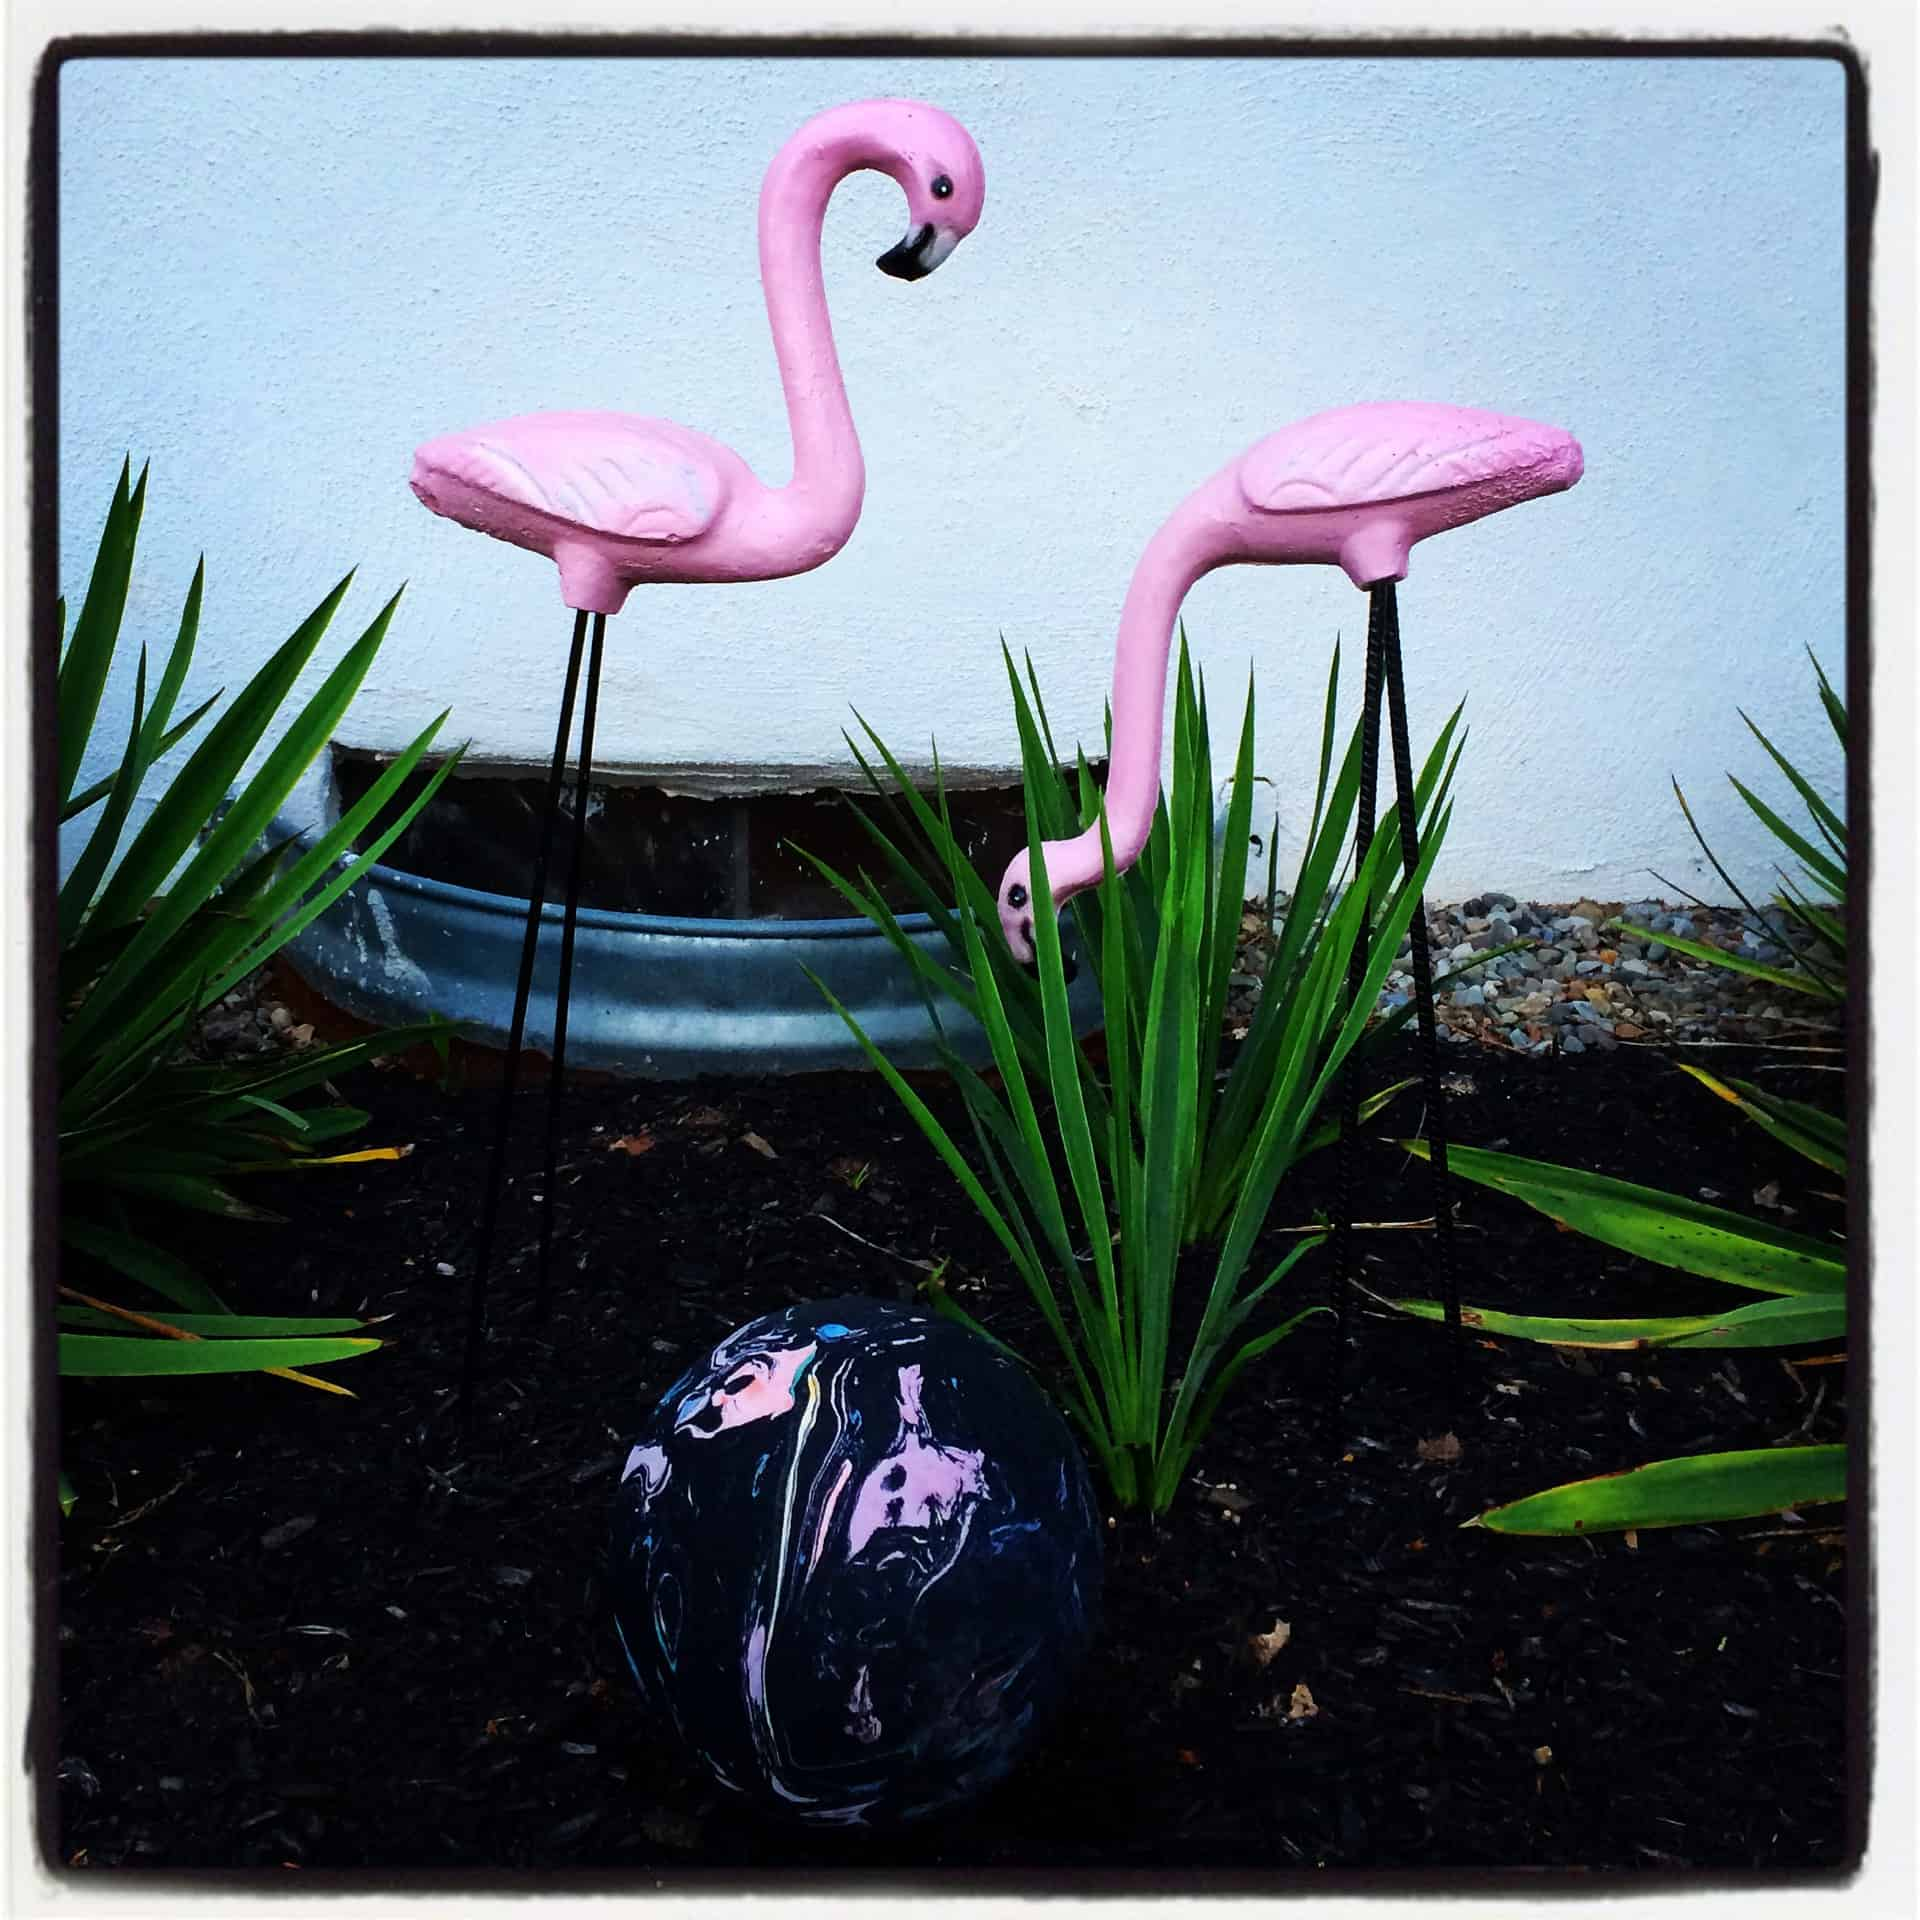 Pat's Concrete - White Marsh MD Flamingos